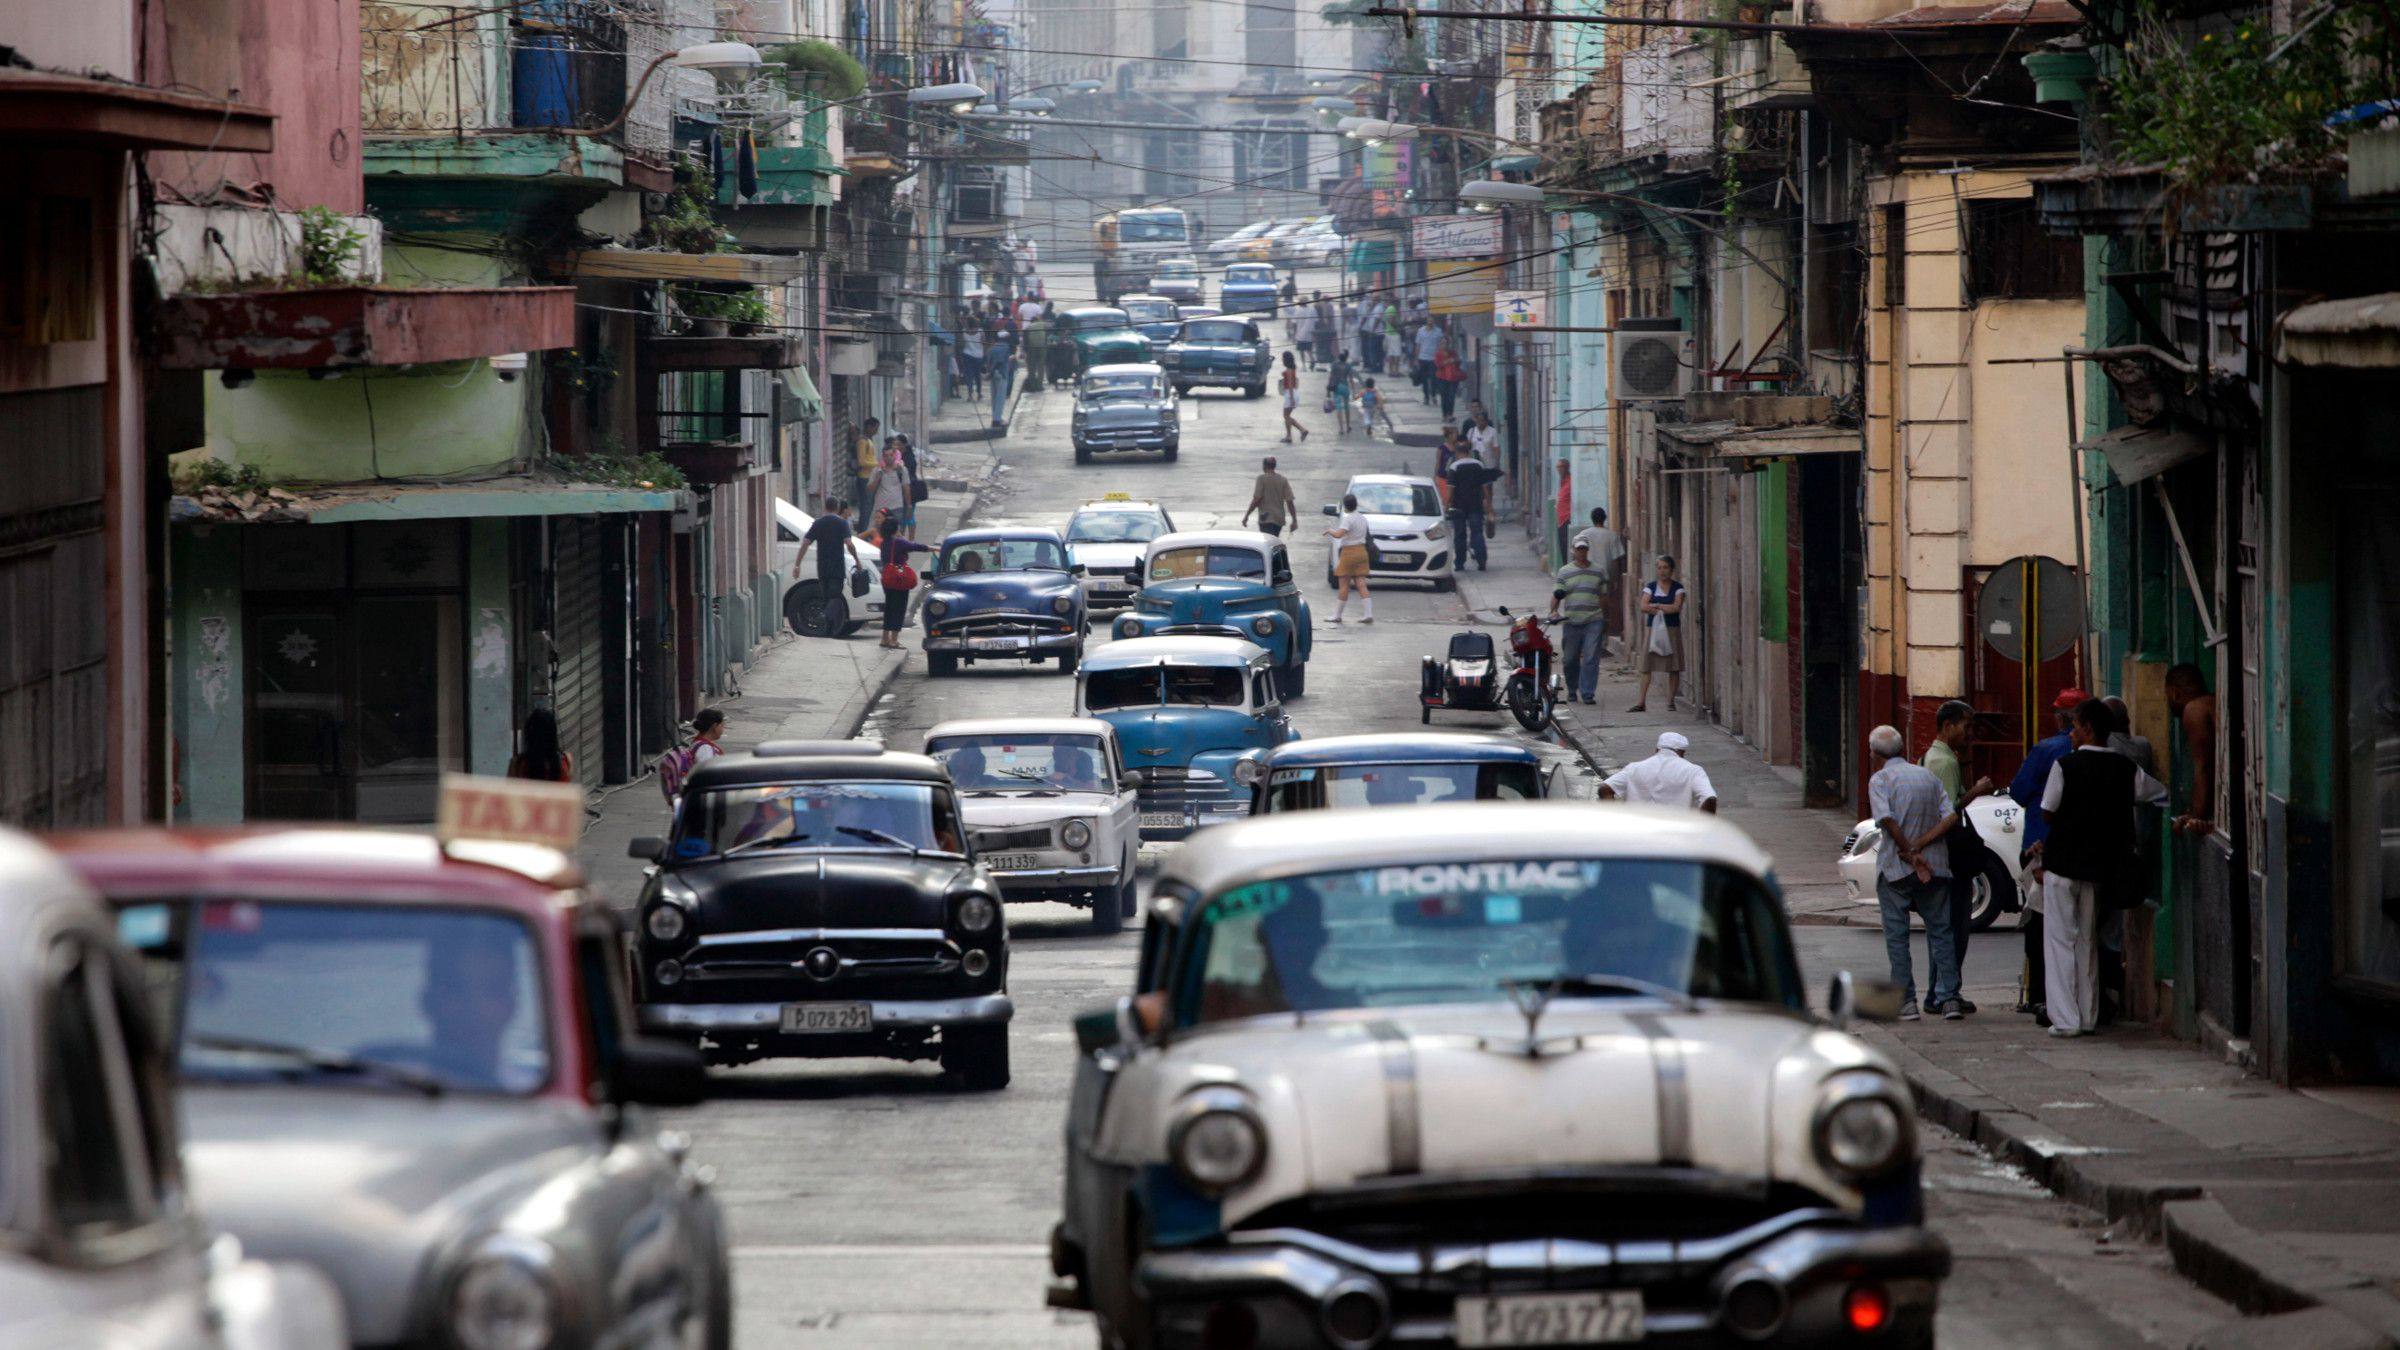 Classic American cars used as collective taxis drive along a street in Havana, Cuba, Friday, Jan. 16, 2015. Tens of thousands more American tourists are expected to flock this year to a country where some five-star hotels don't have working air-conditioning or hand towels. The Obama administration hopes the new wave of U.S. tourists will fuel one of the healthiest parts of Cuba's new entrepreneurial sector, the thousands of private bed and breakfasts.